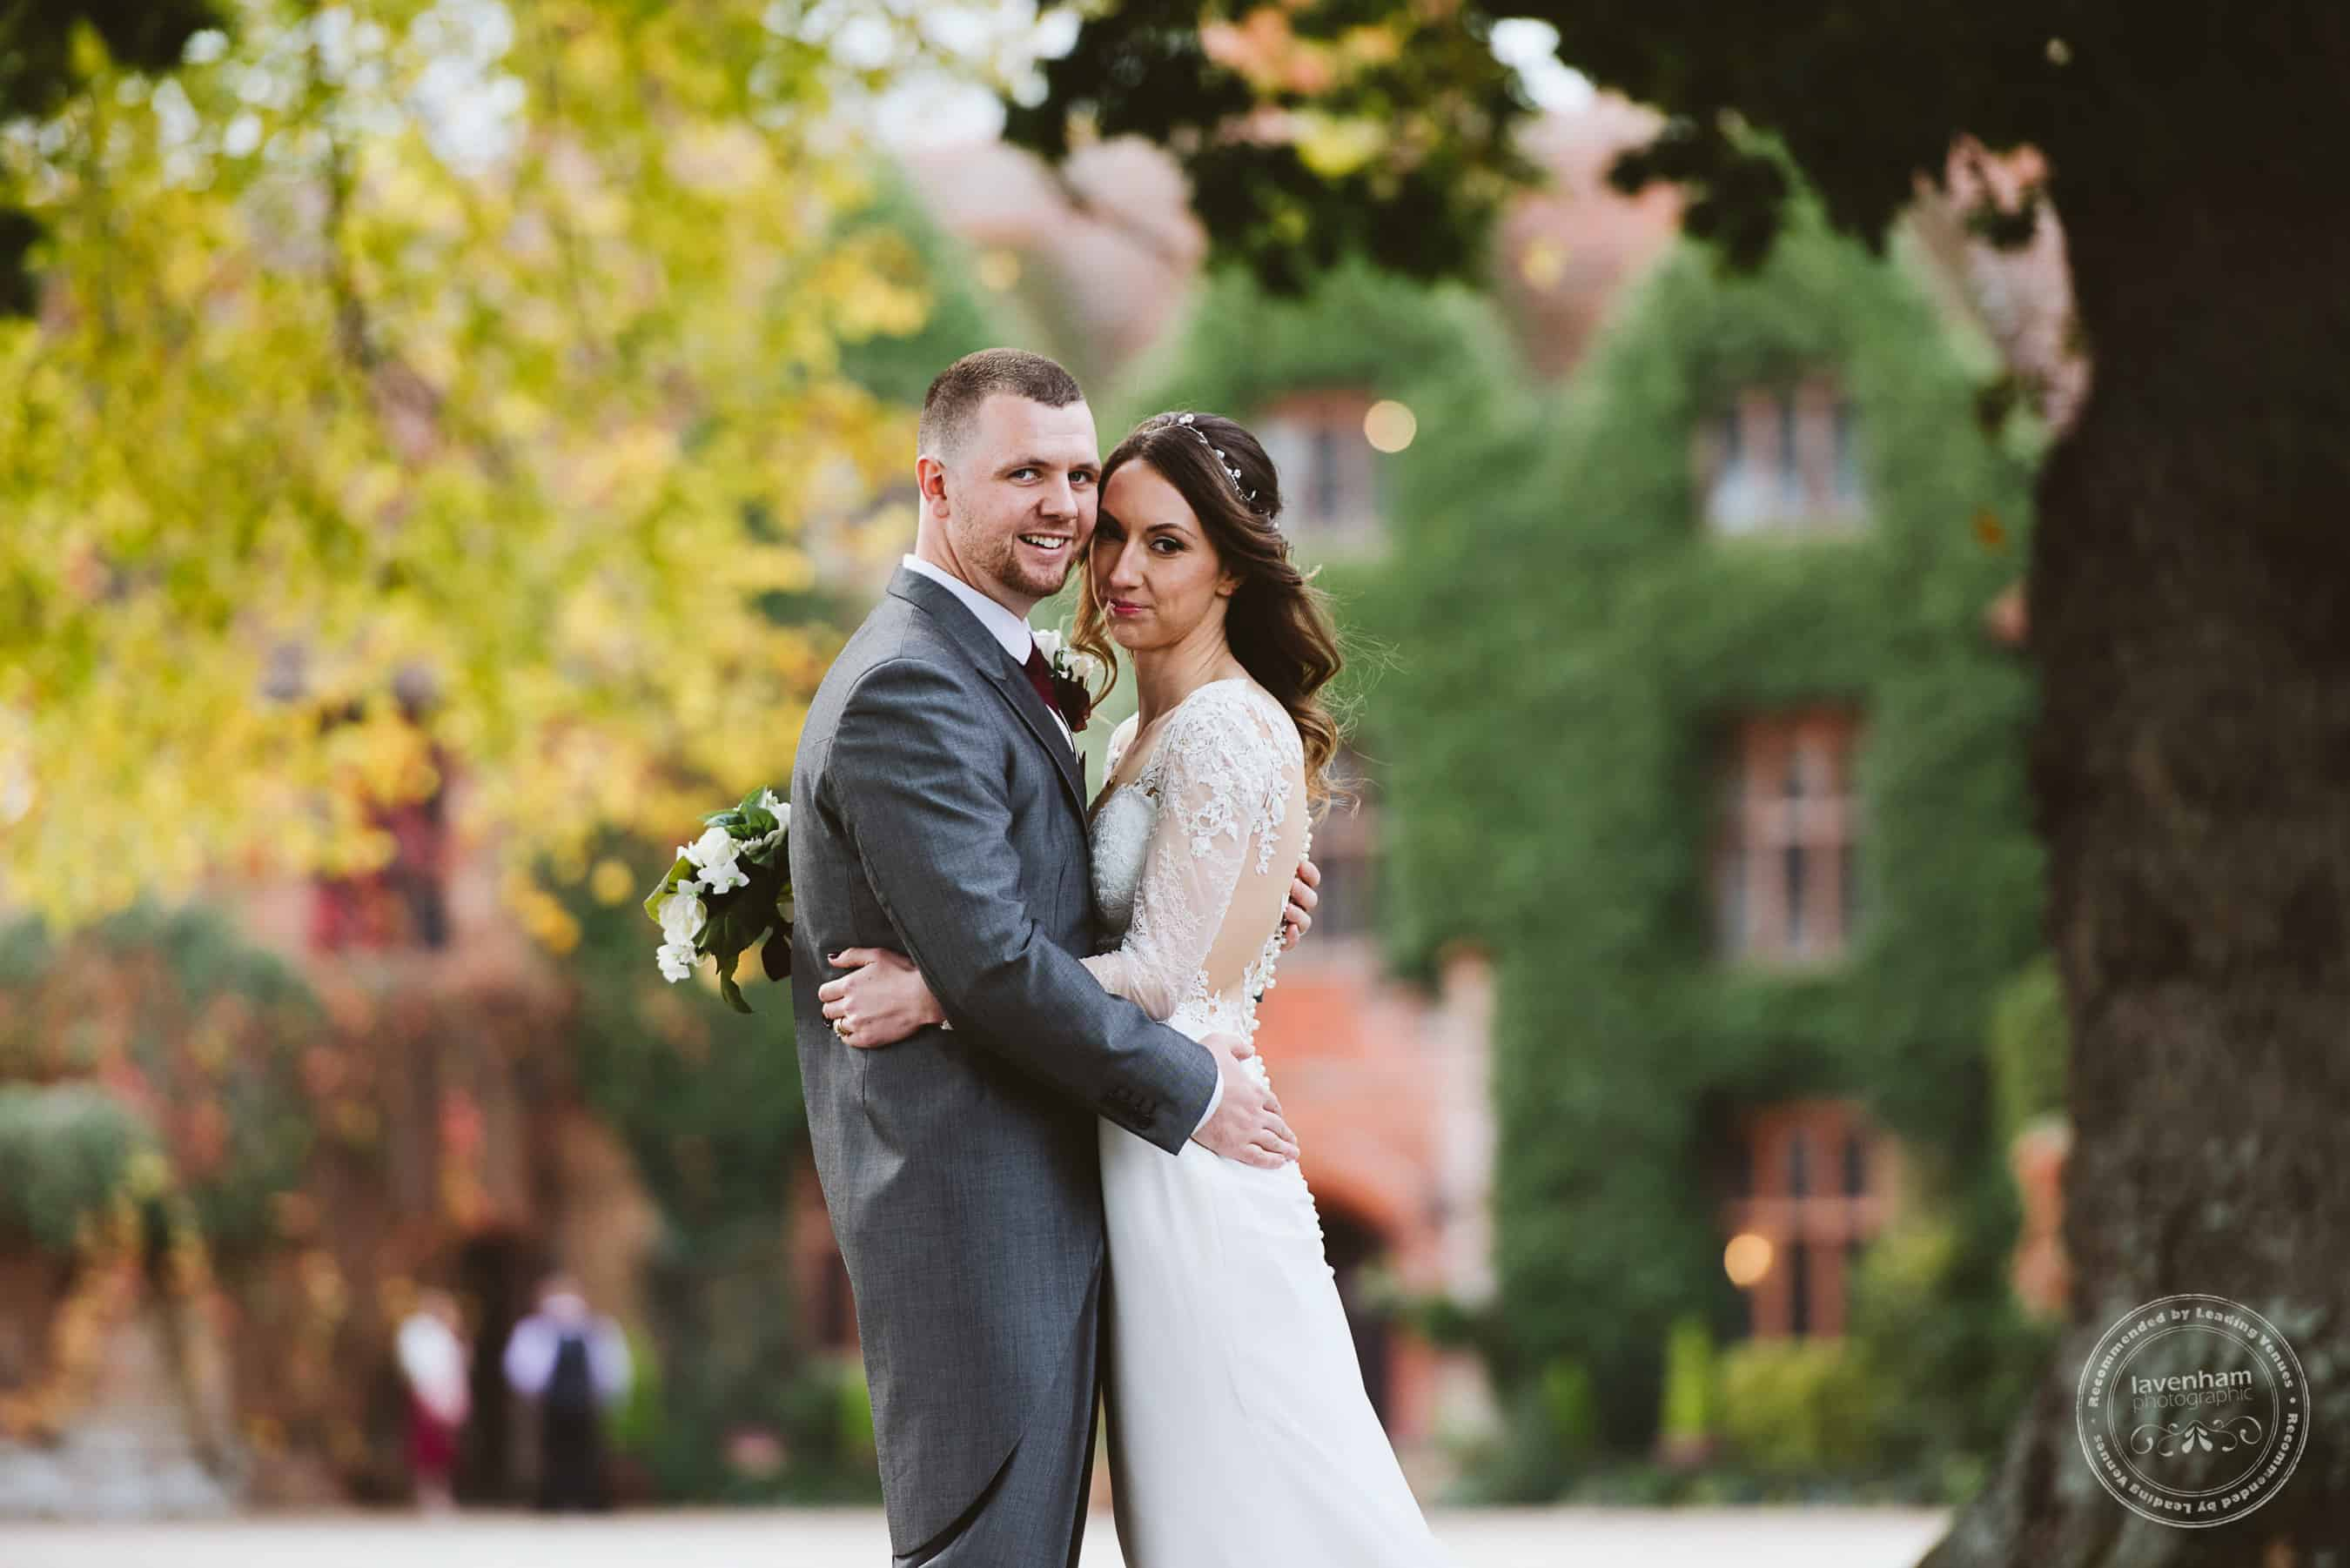 041118 Woodhall Manor Wedding Photography by Lavenham Photographic 099